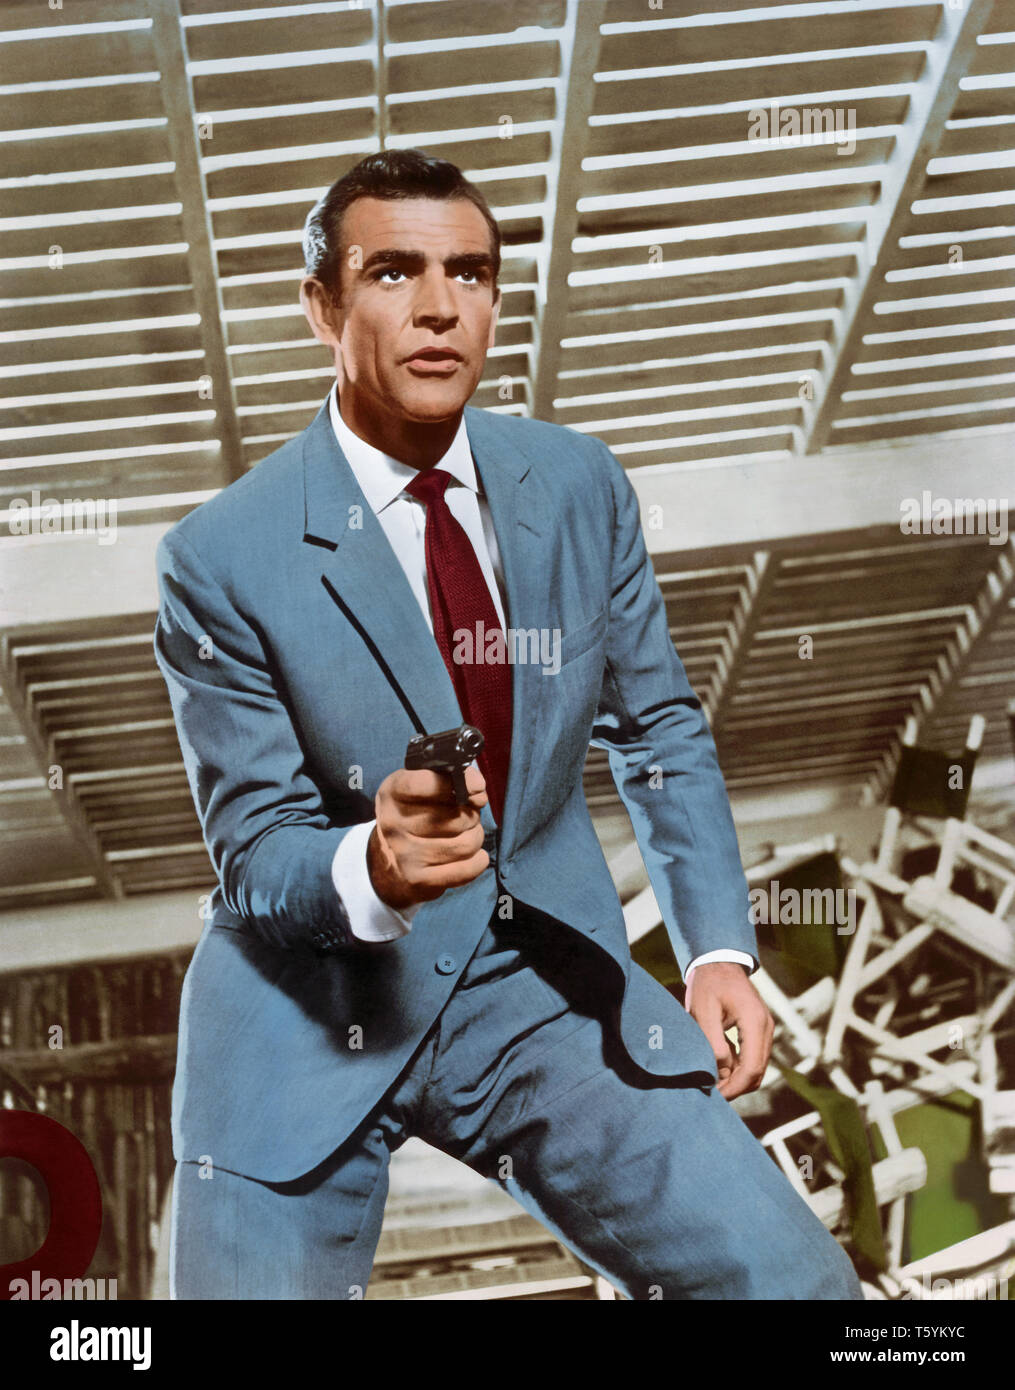 James Bond Sean Connery High Resolution Stock Photography And Images Alamy